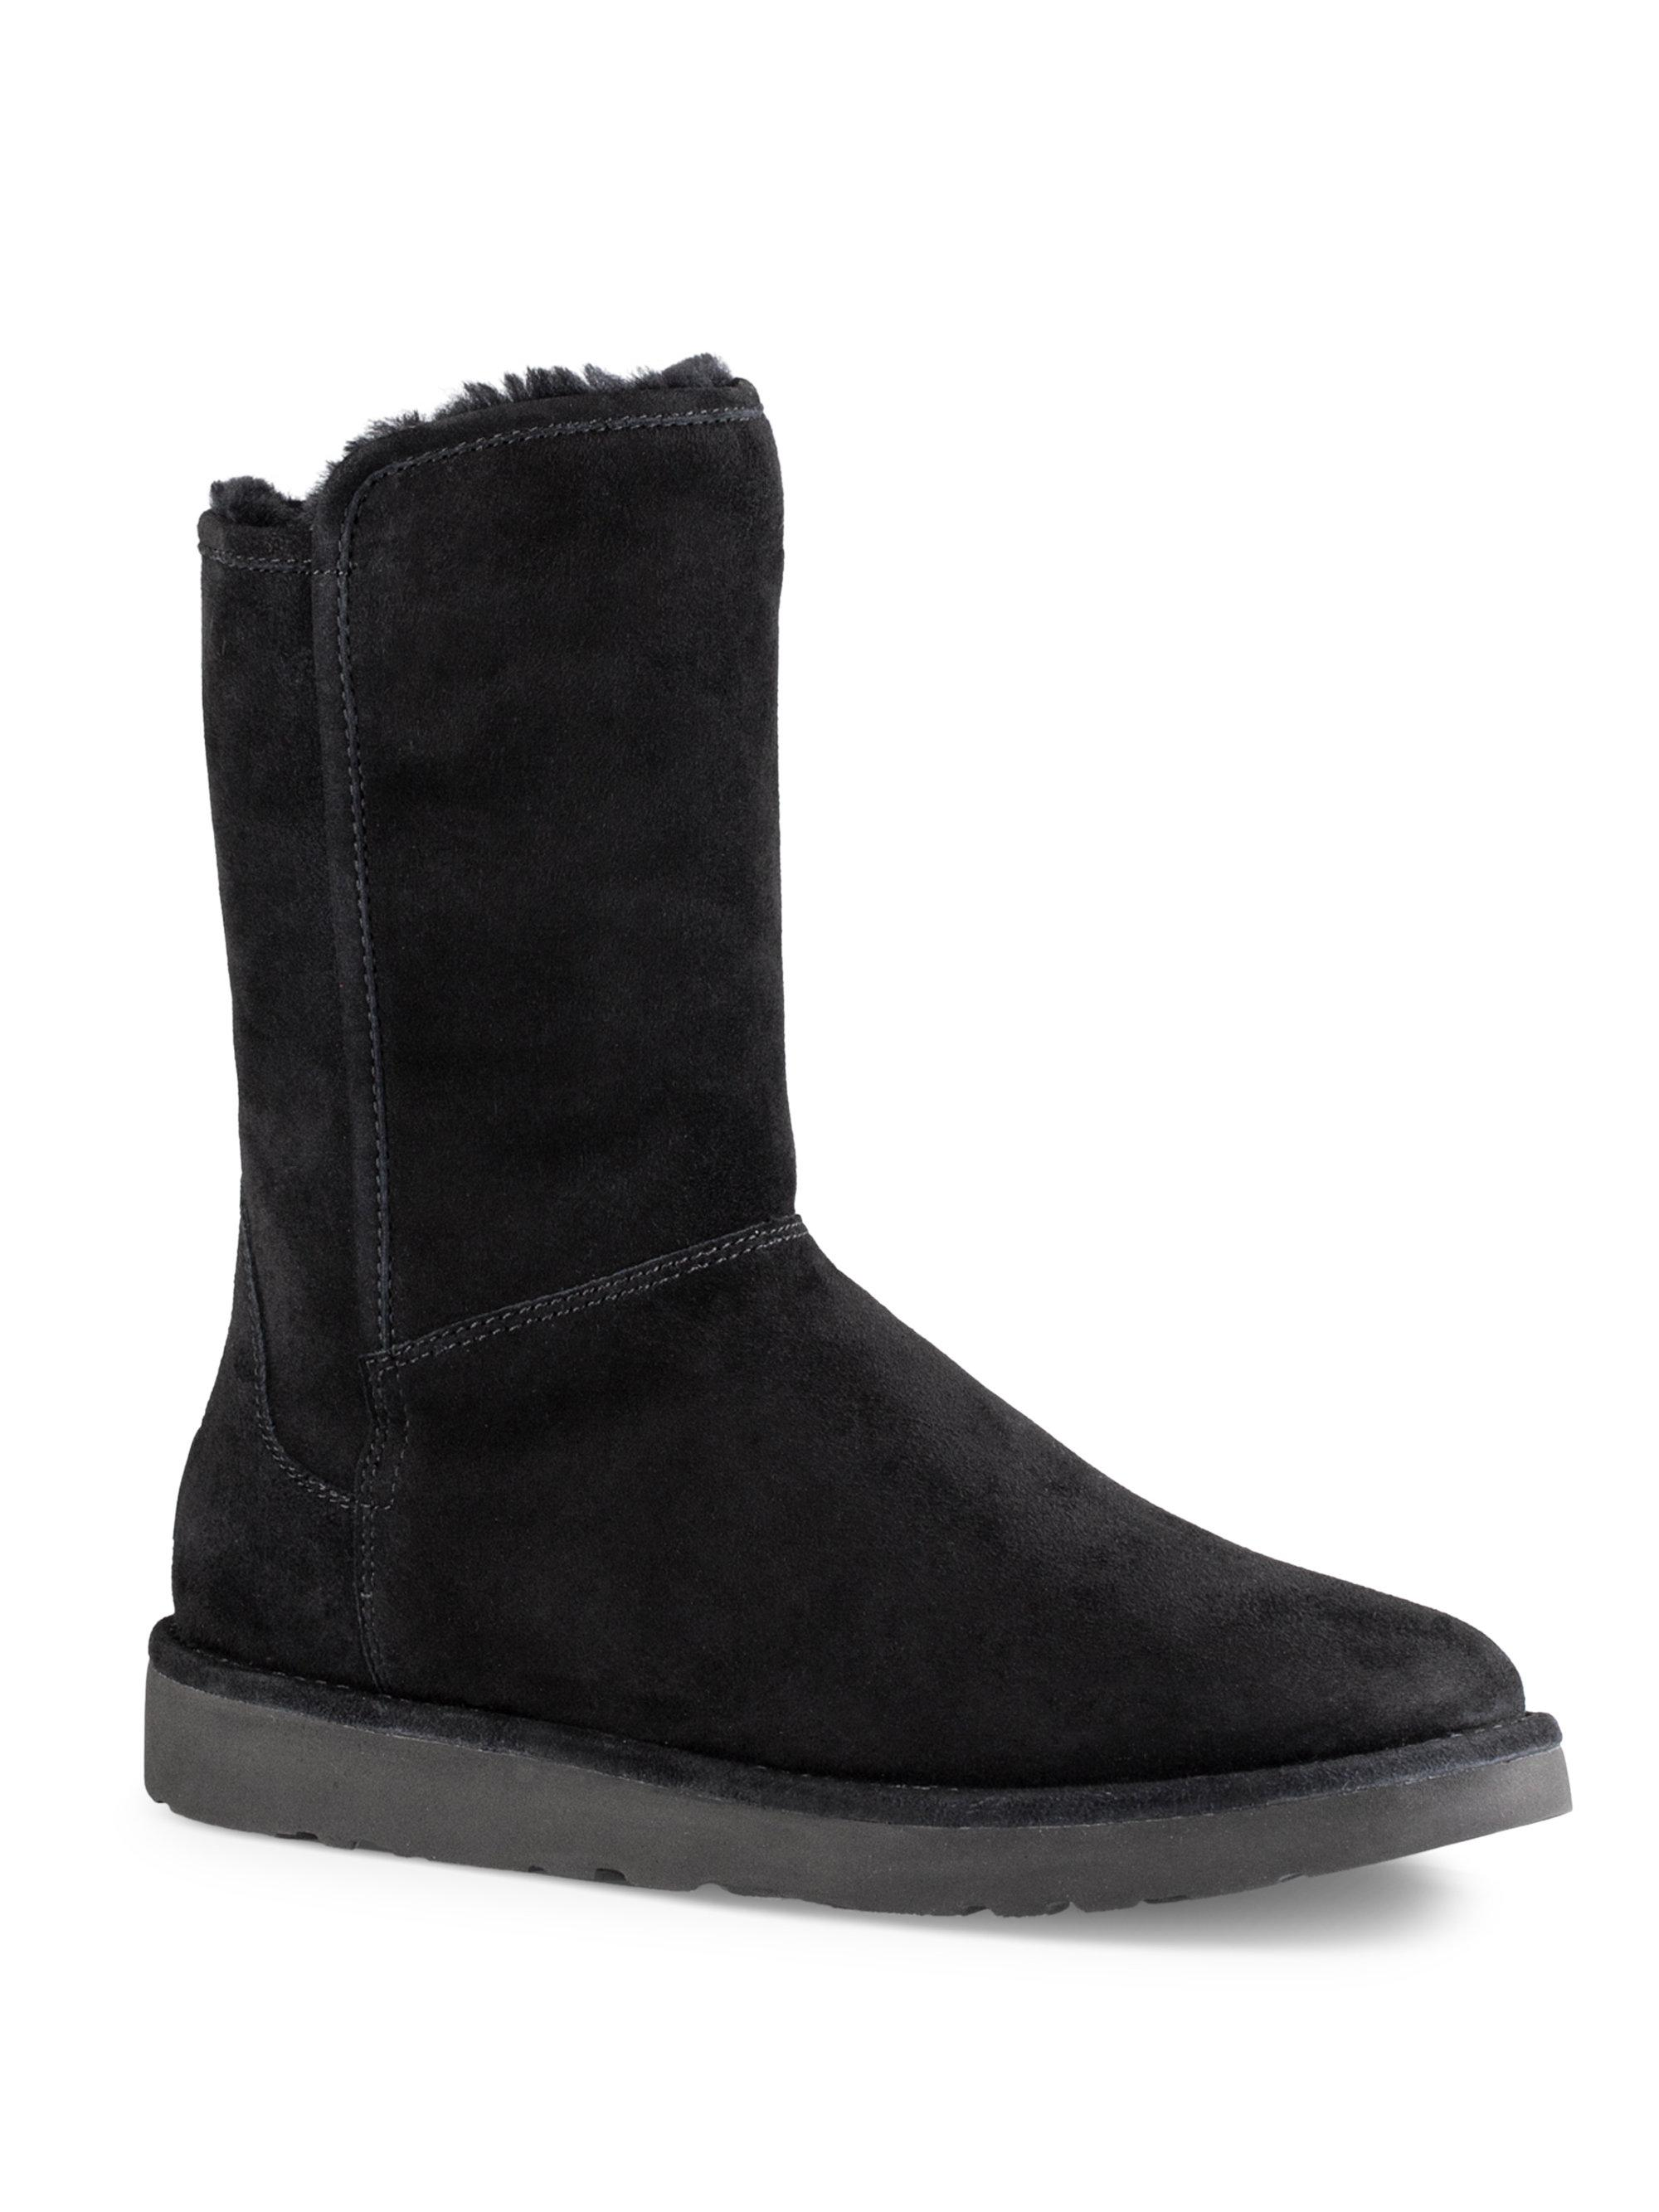 UGG® Abree Short II Suede Slip-On Sheepskin Lined Boots